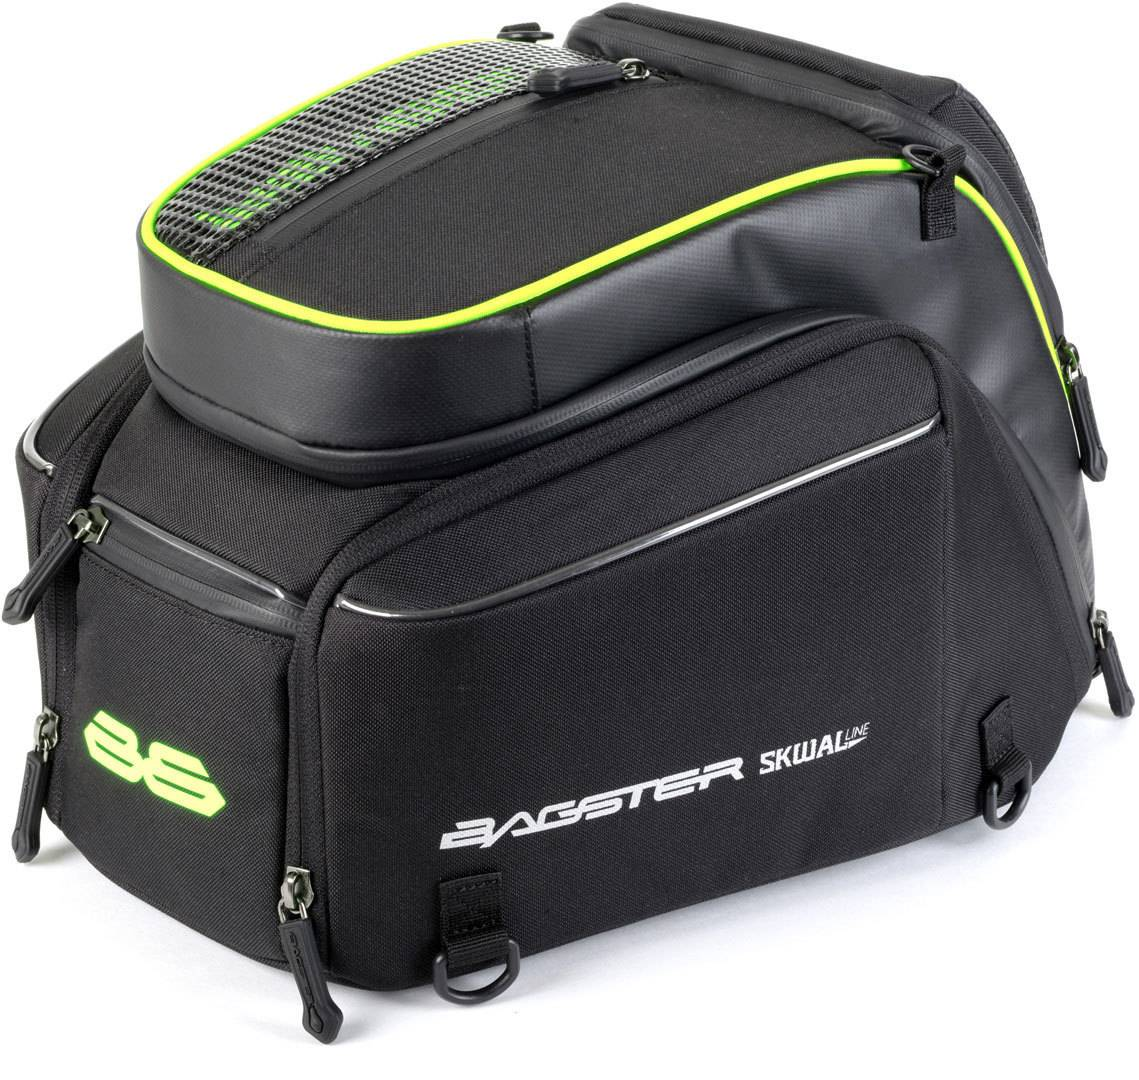 Bagster Transformer Tail Bag  - Black Yellow - Size: One Size